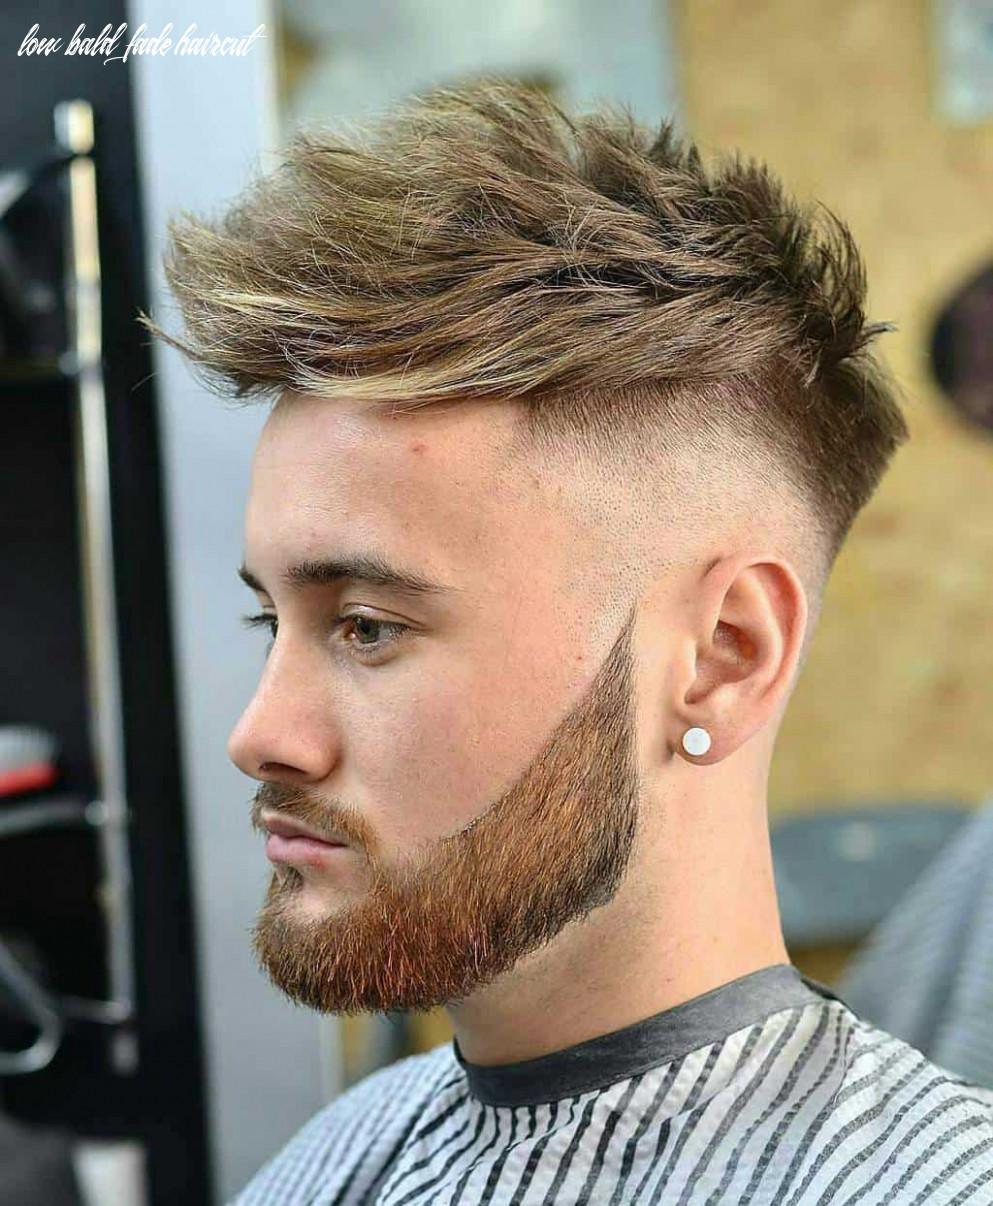 Low bald fade hairstyles: 10 badass ways to sport low bald fade haircut